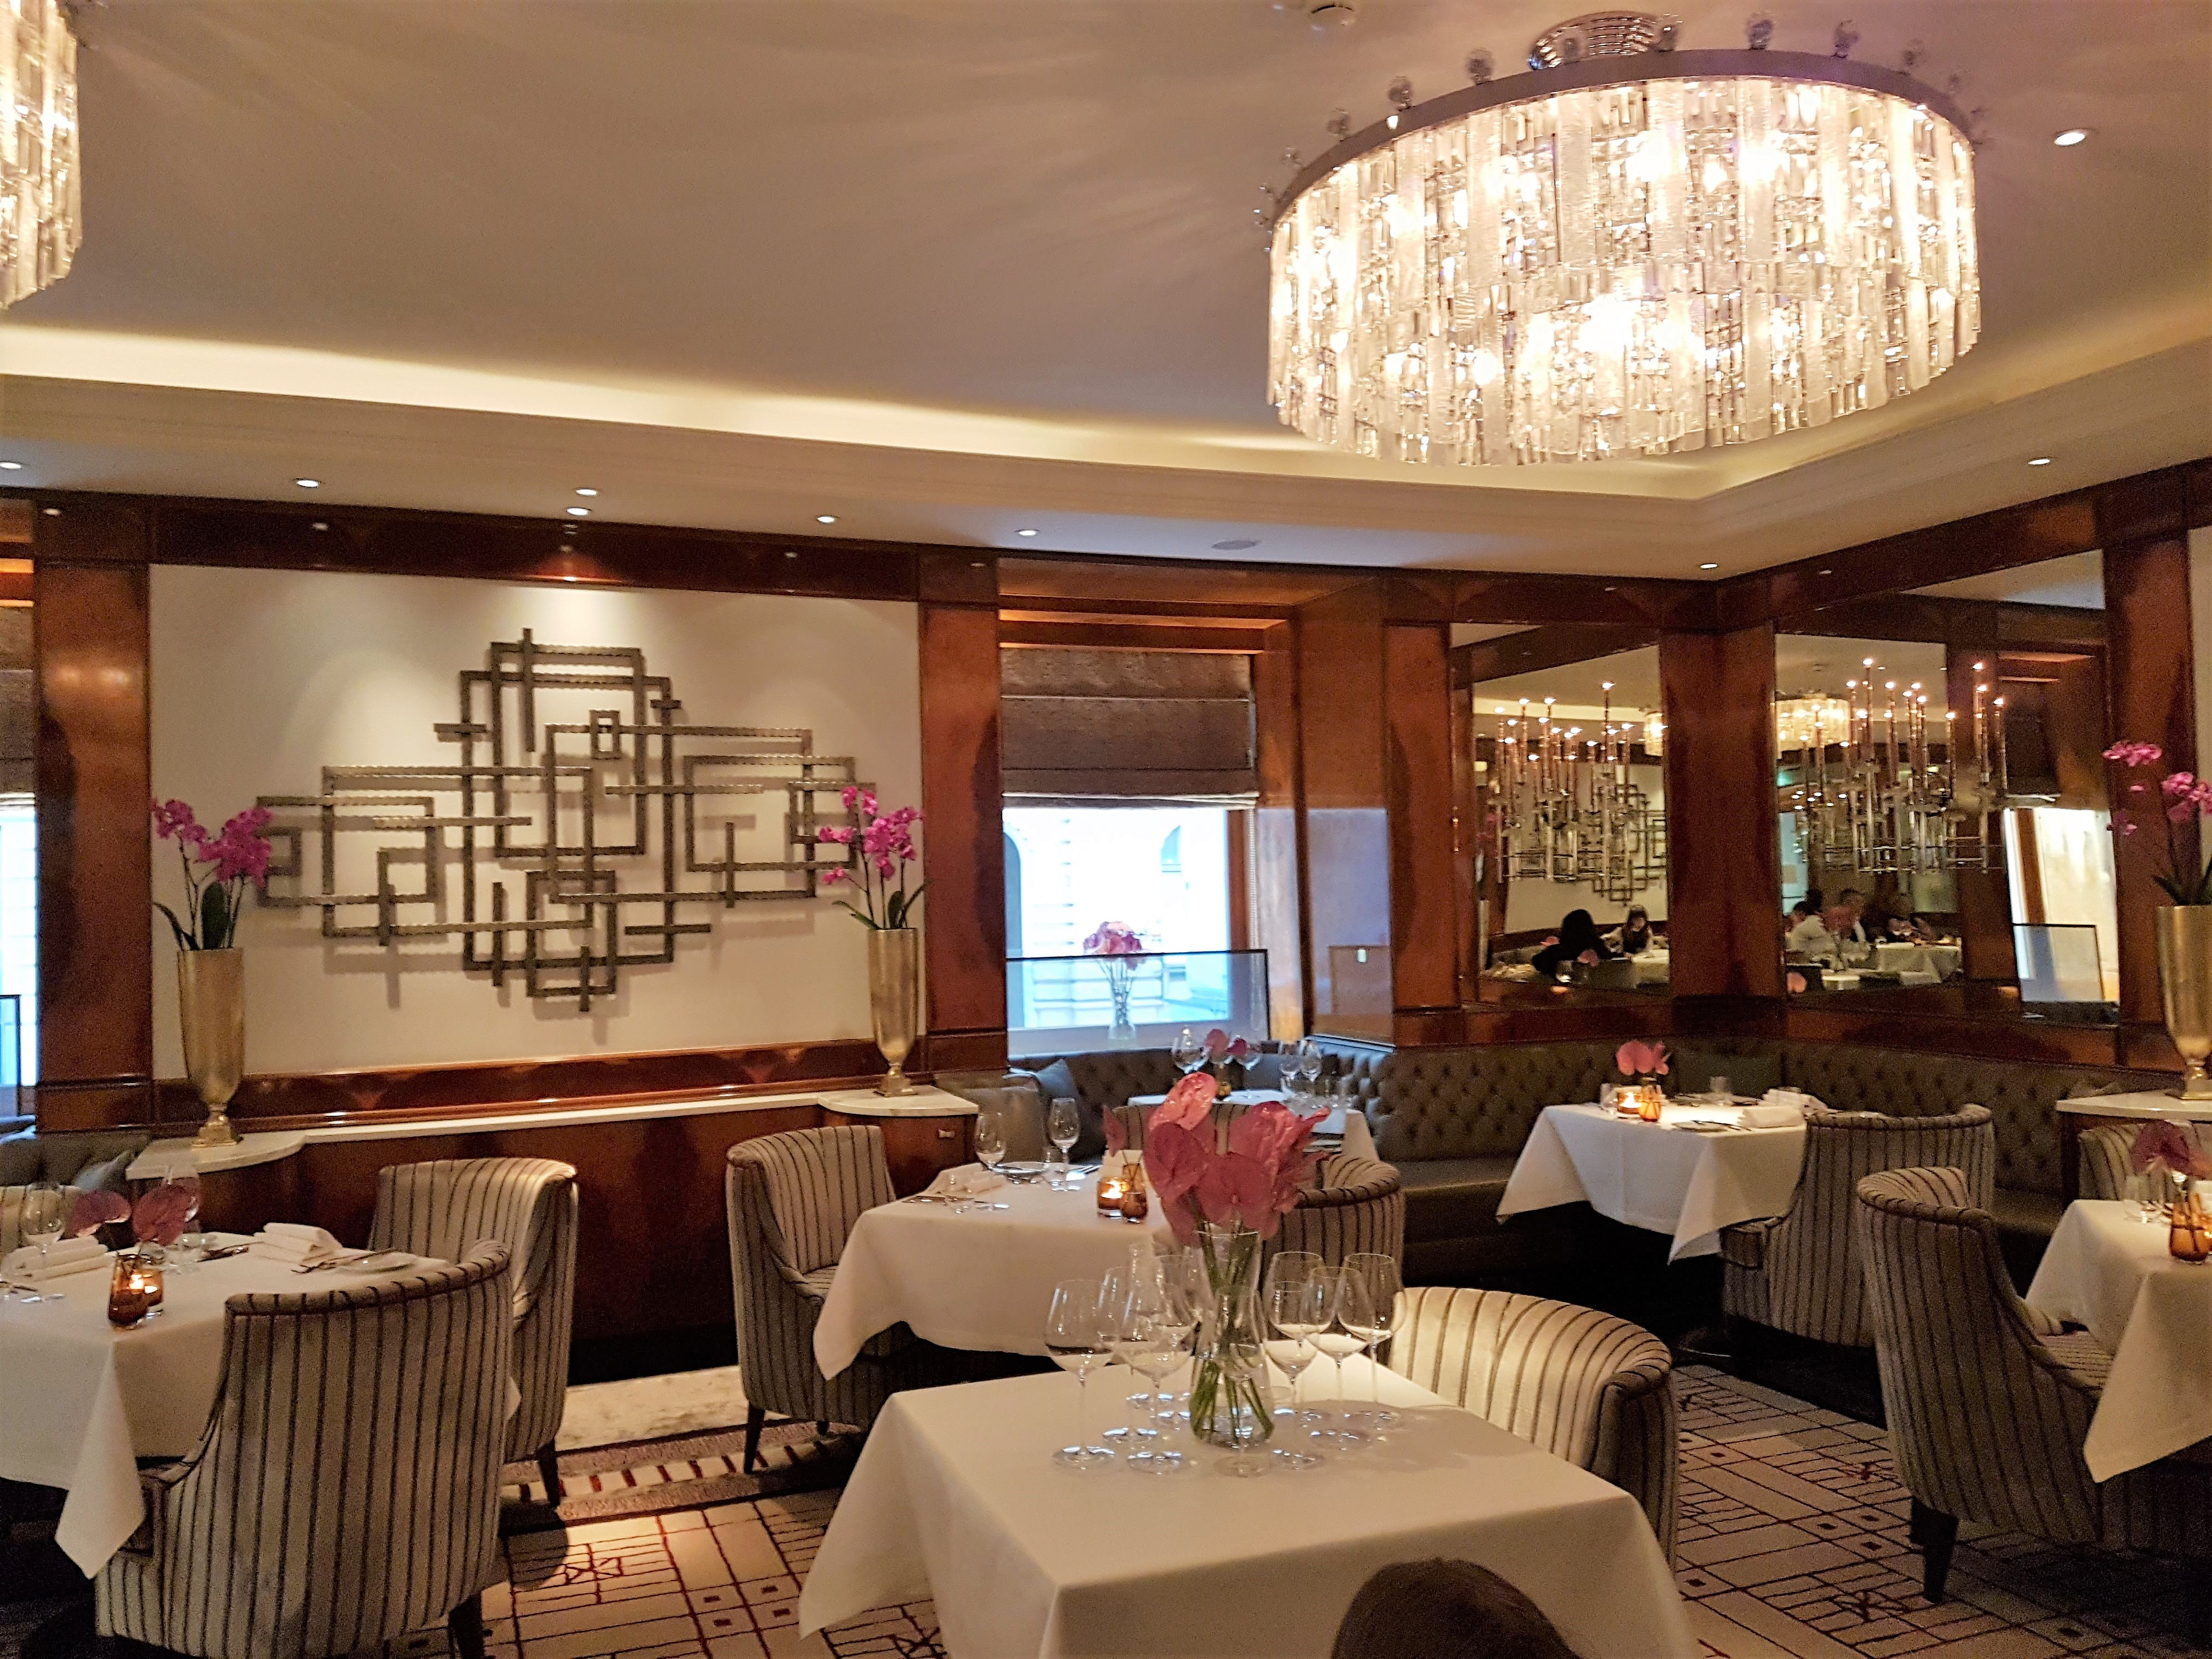 WHO IS THE REAL STAR OF RESTAURANT OPUS, VIENNA?